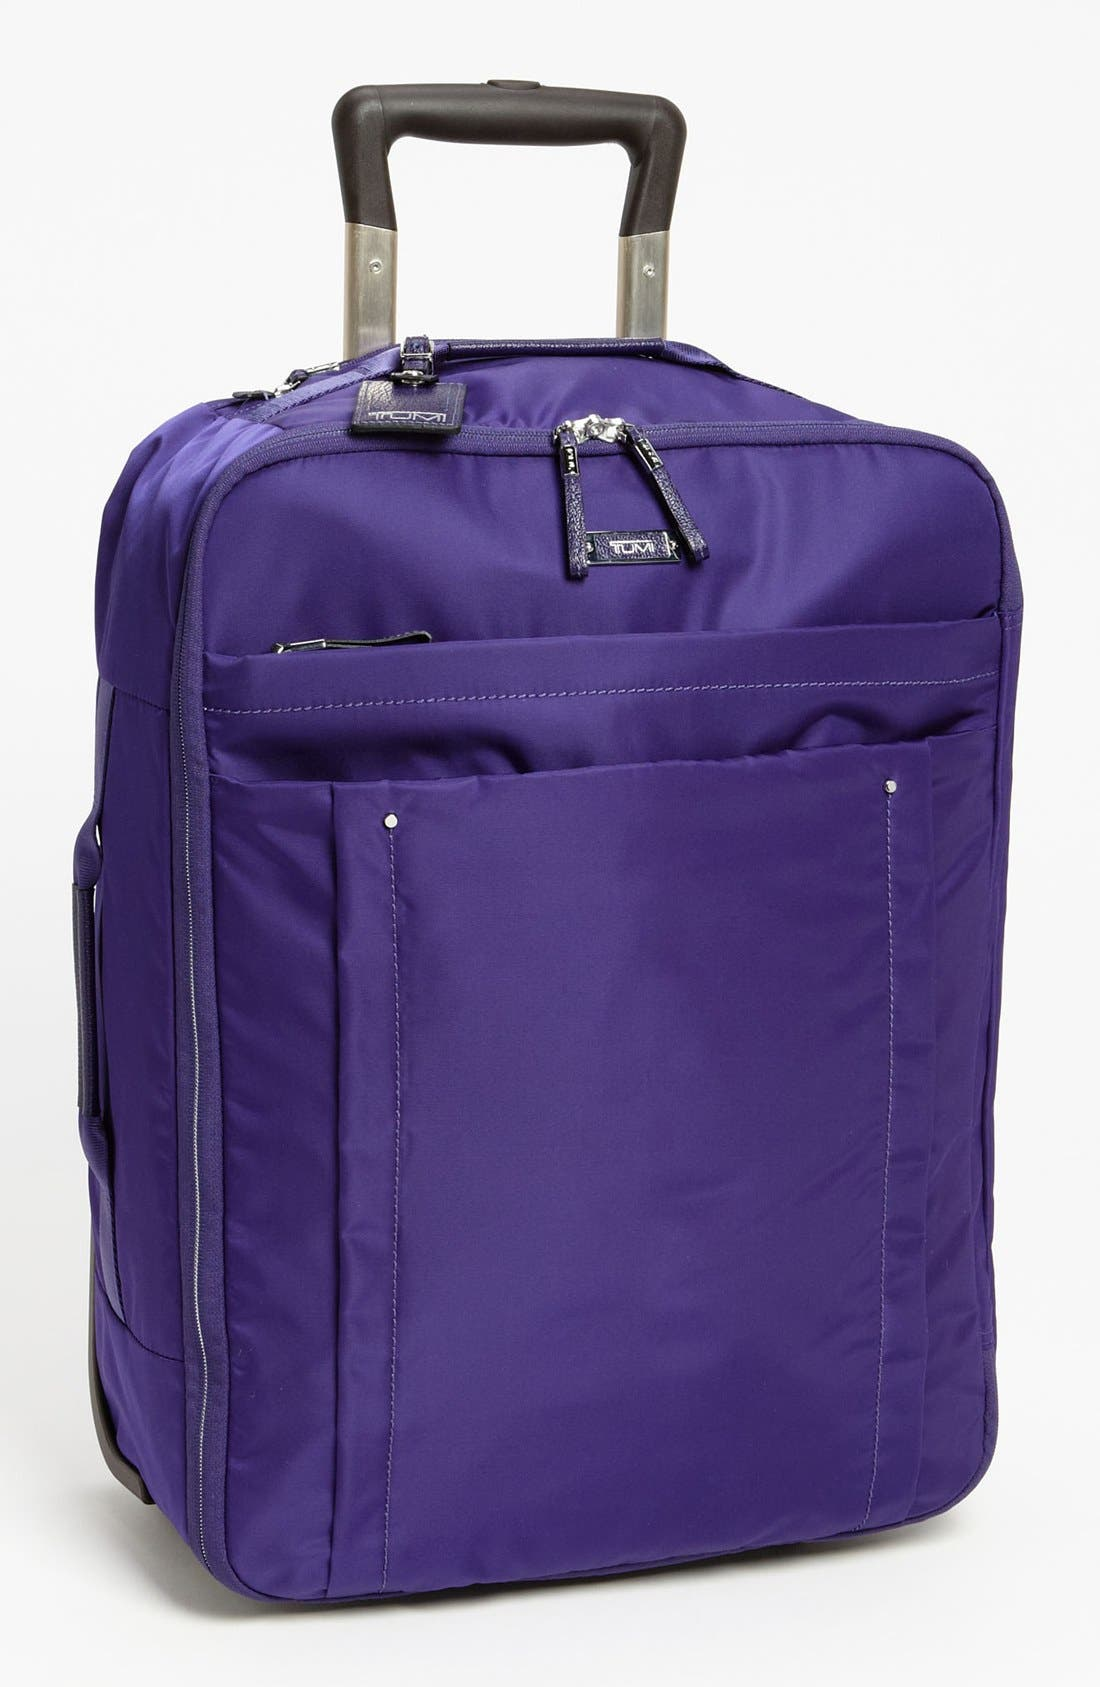 Alternate Image 1 Selected - Tumi 'Super Léger' Wheeled Carry-On